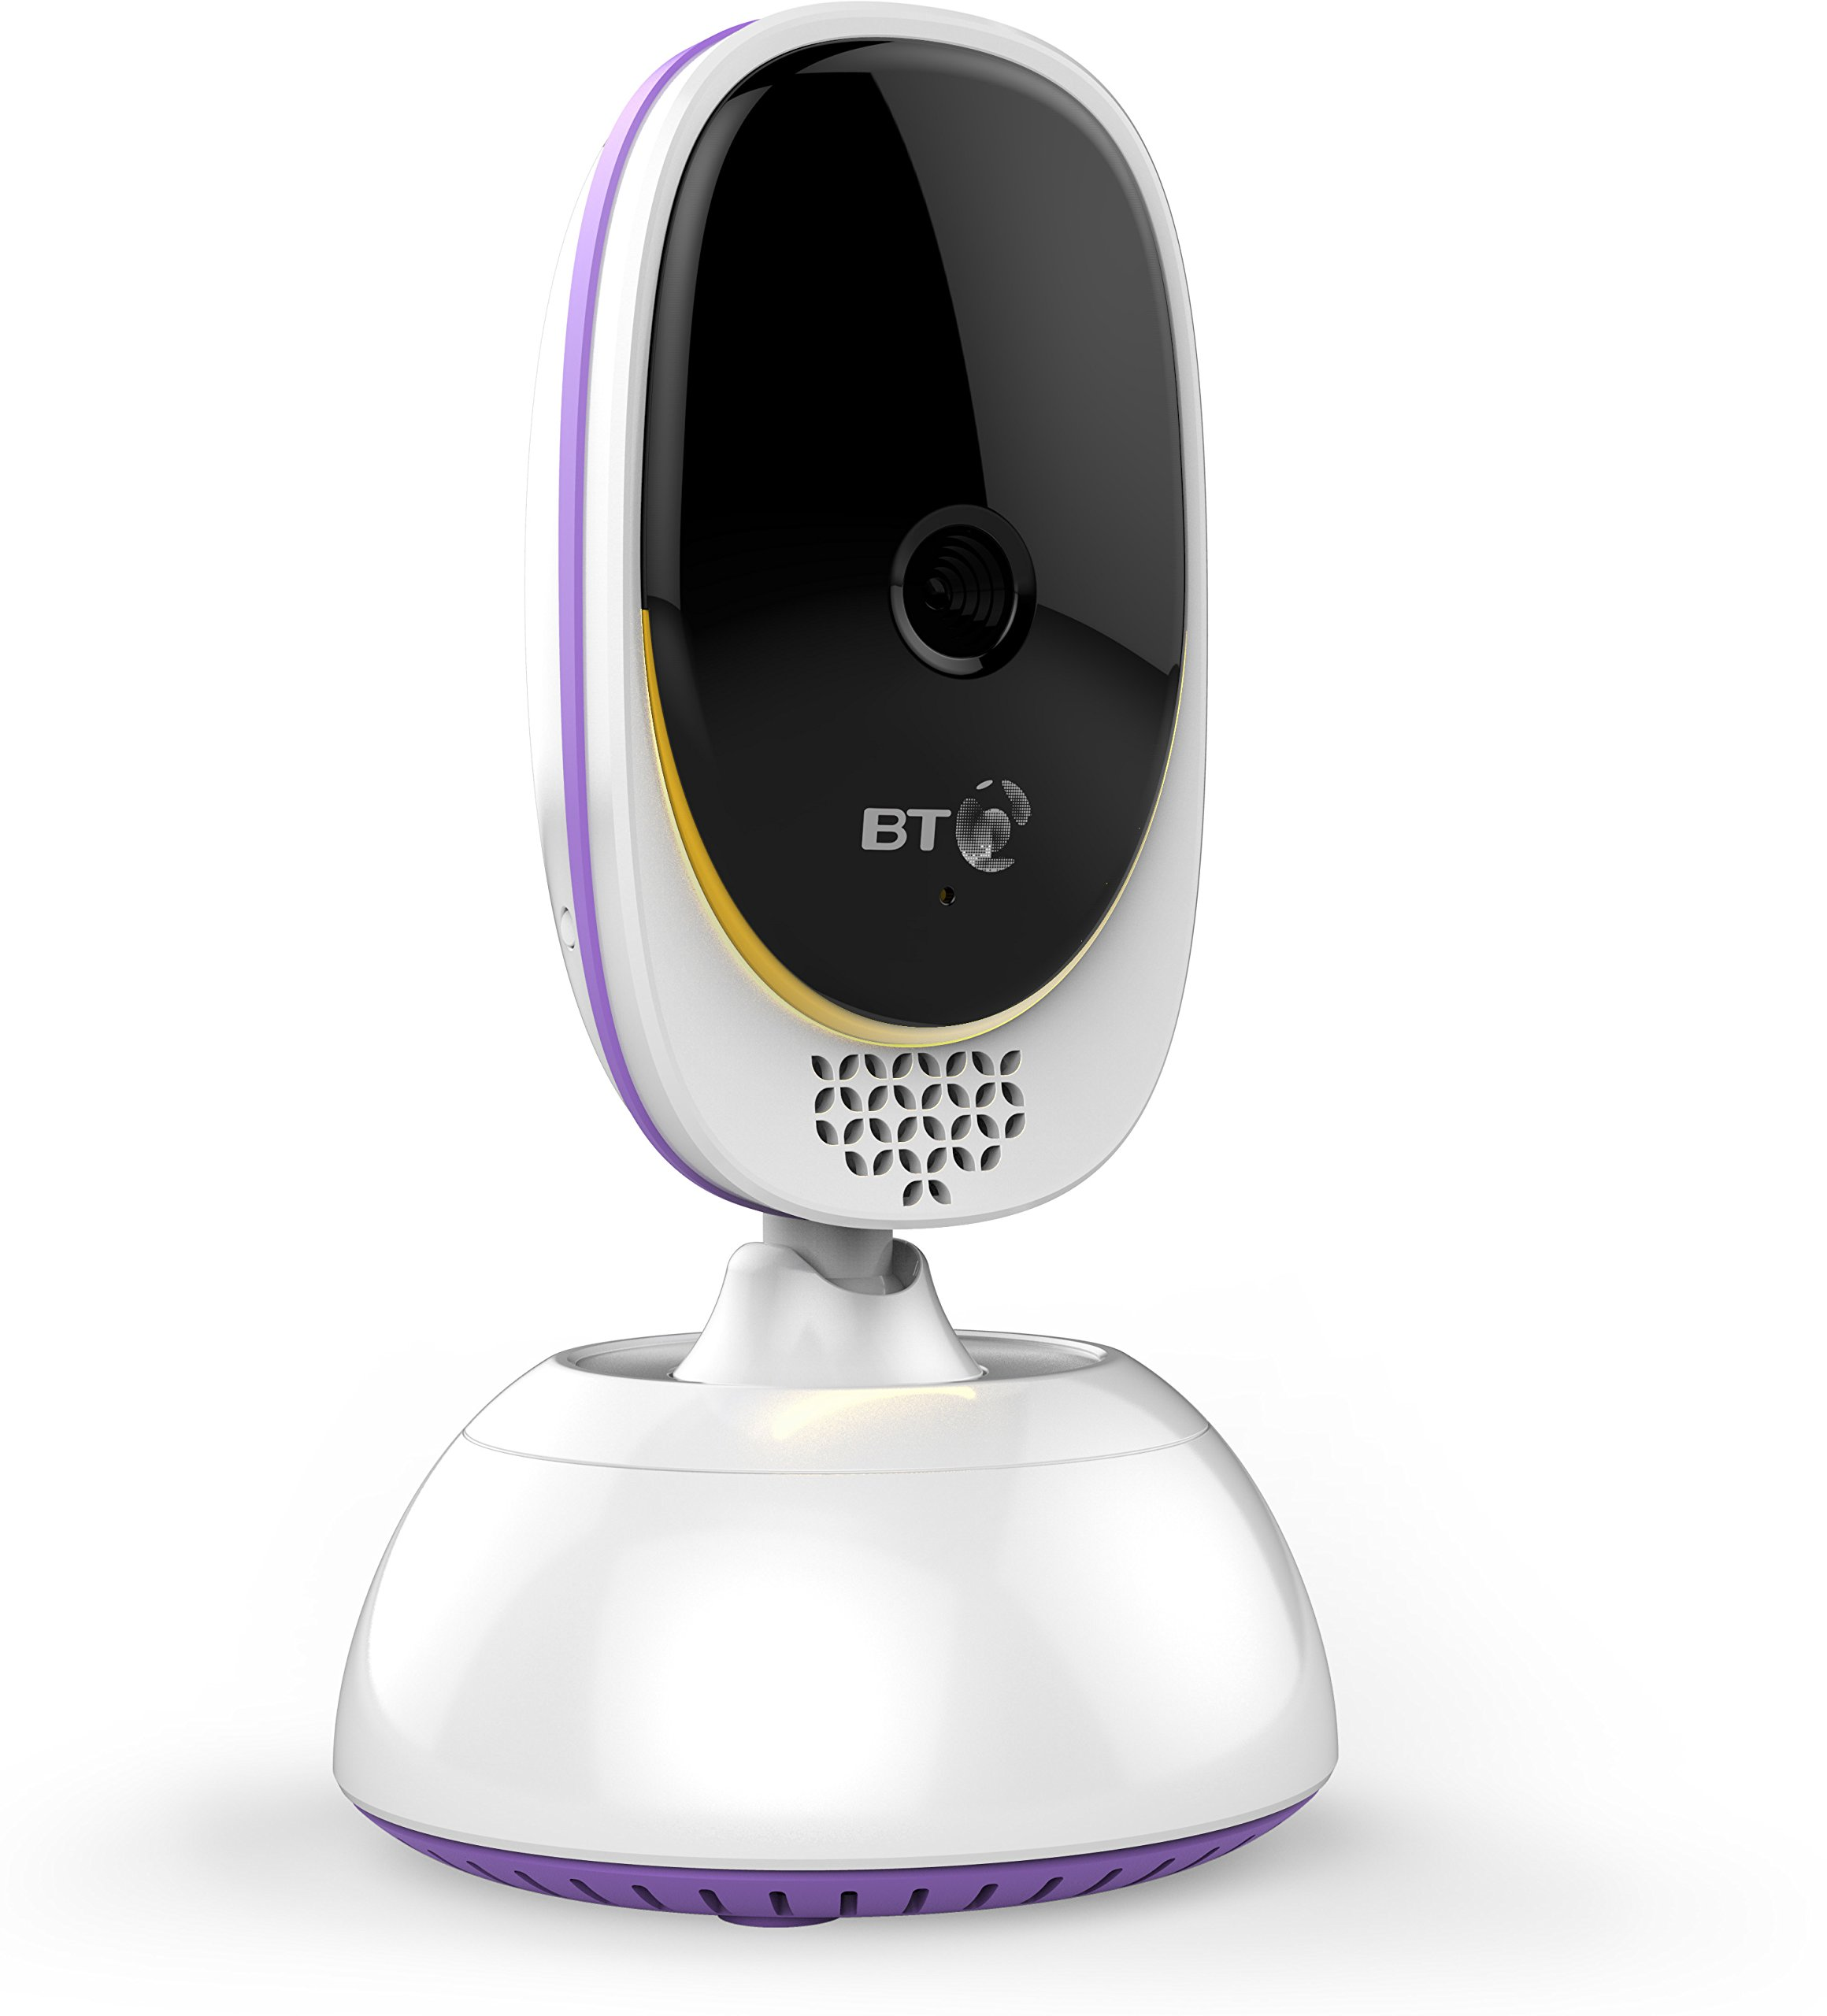 BT Video Baby Monitor 5000 BT 2.8 inches screen Temperature indication / 5 lullabies.Battery Capacity (PU) 1200mAh Remote control pan and tilt mechanism. Features infra red night vision so you can see your baby in the dark 3